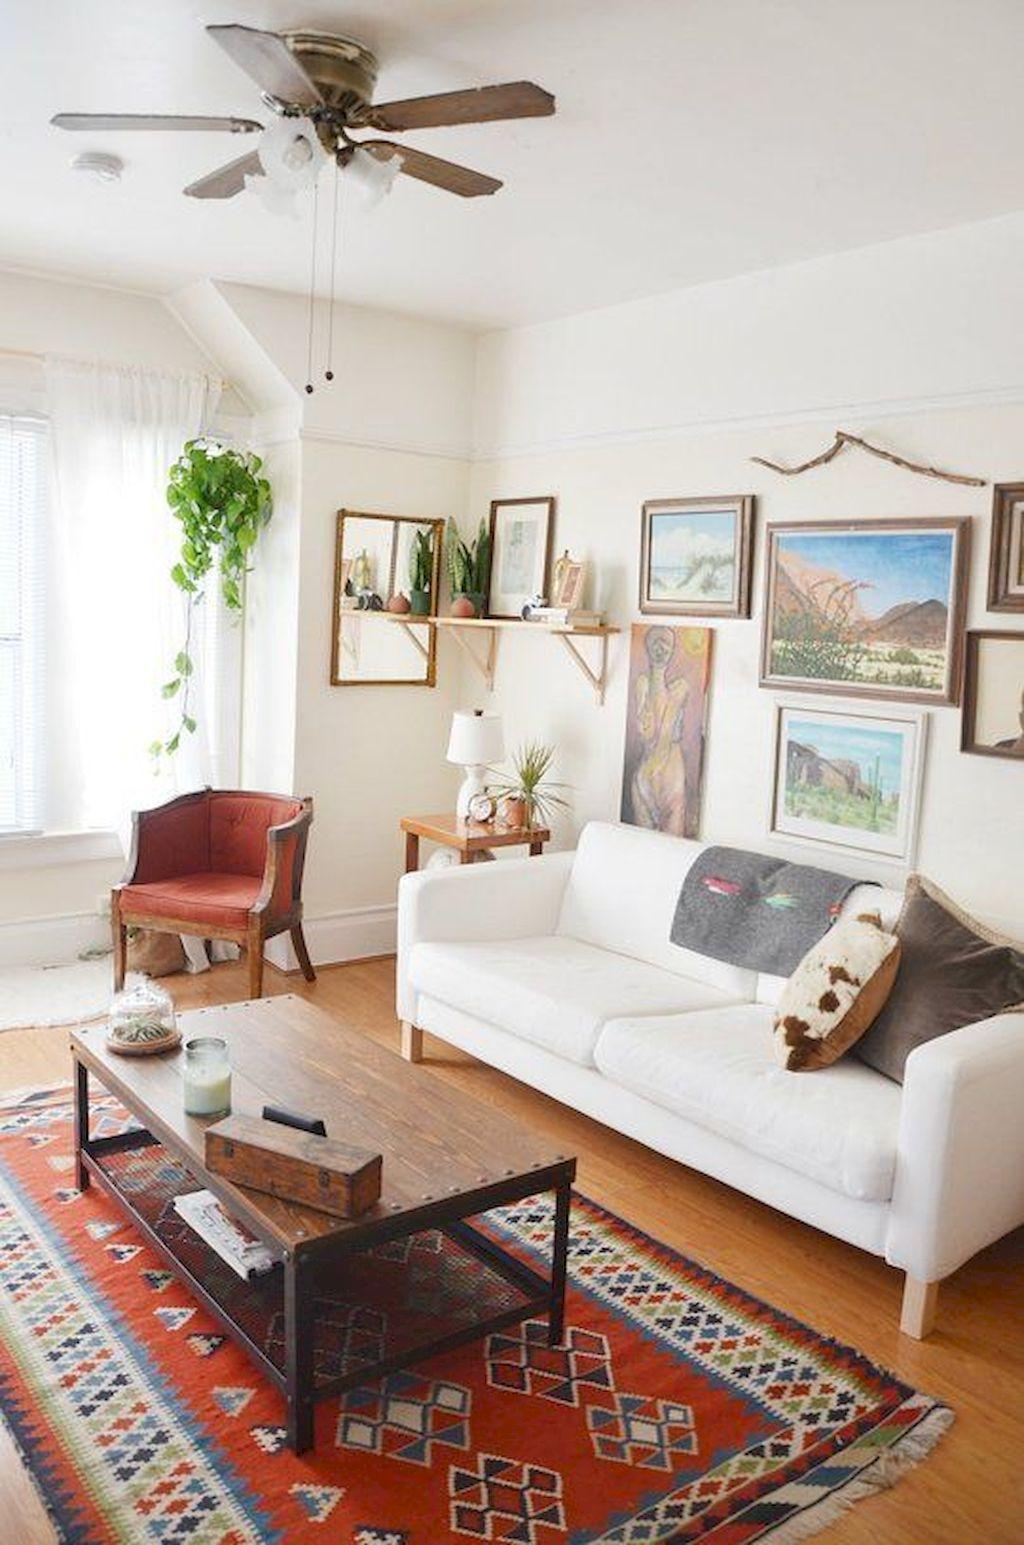 70 Affordable First Apartment Decorating Ideas on A Budget #firstapartment